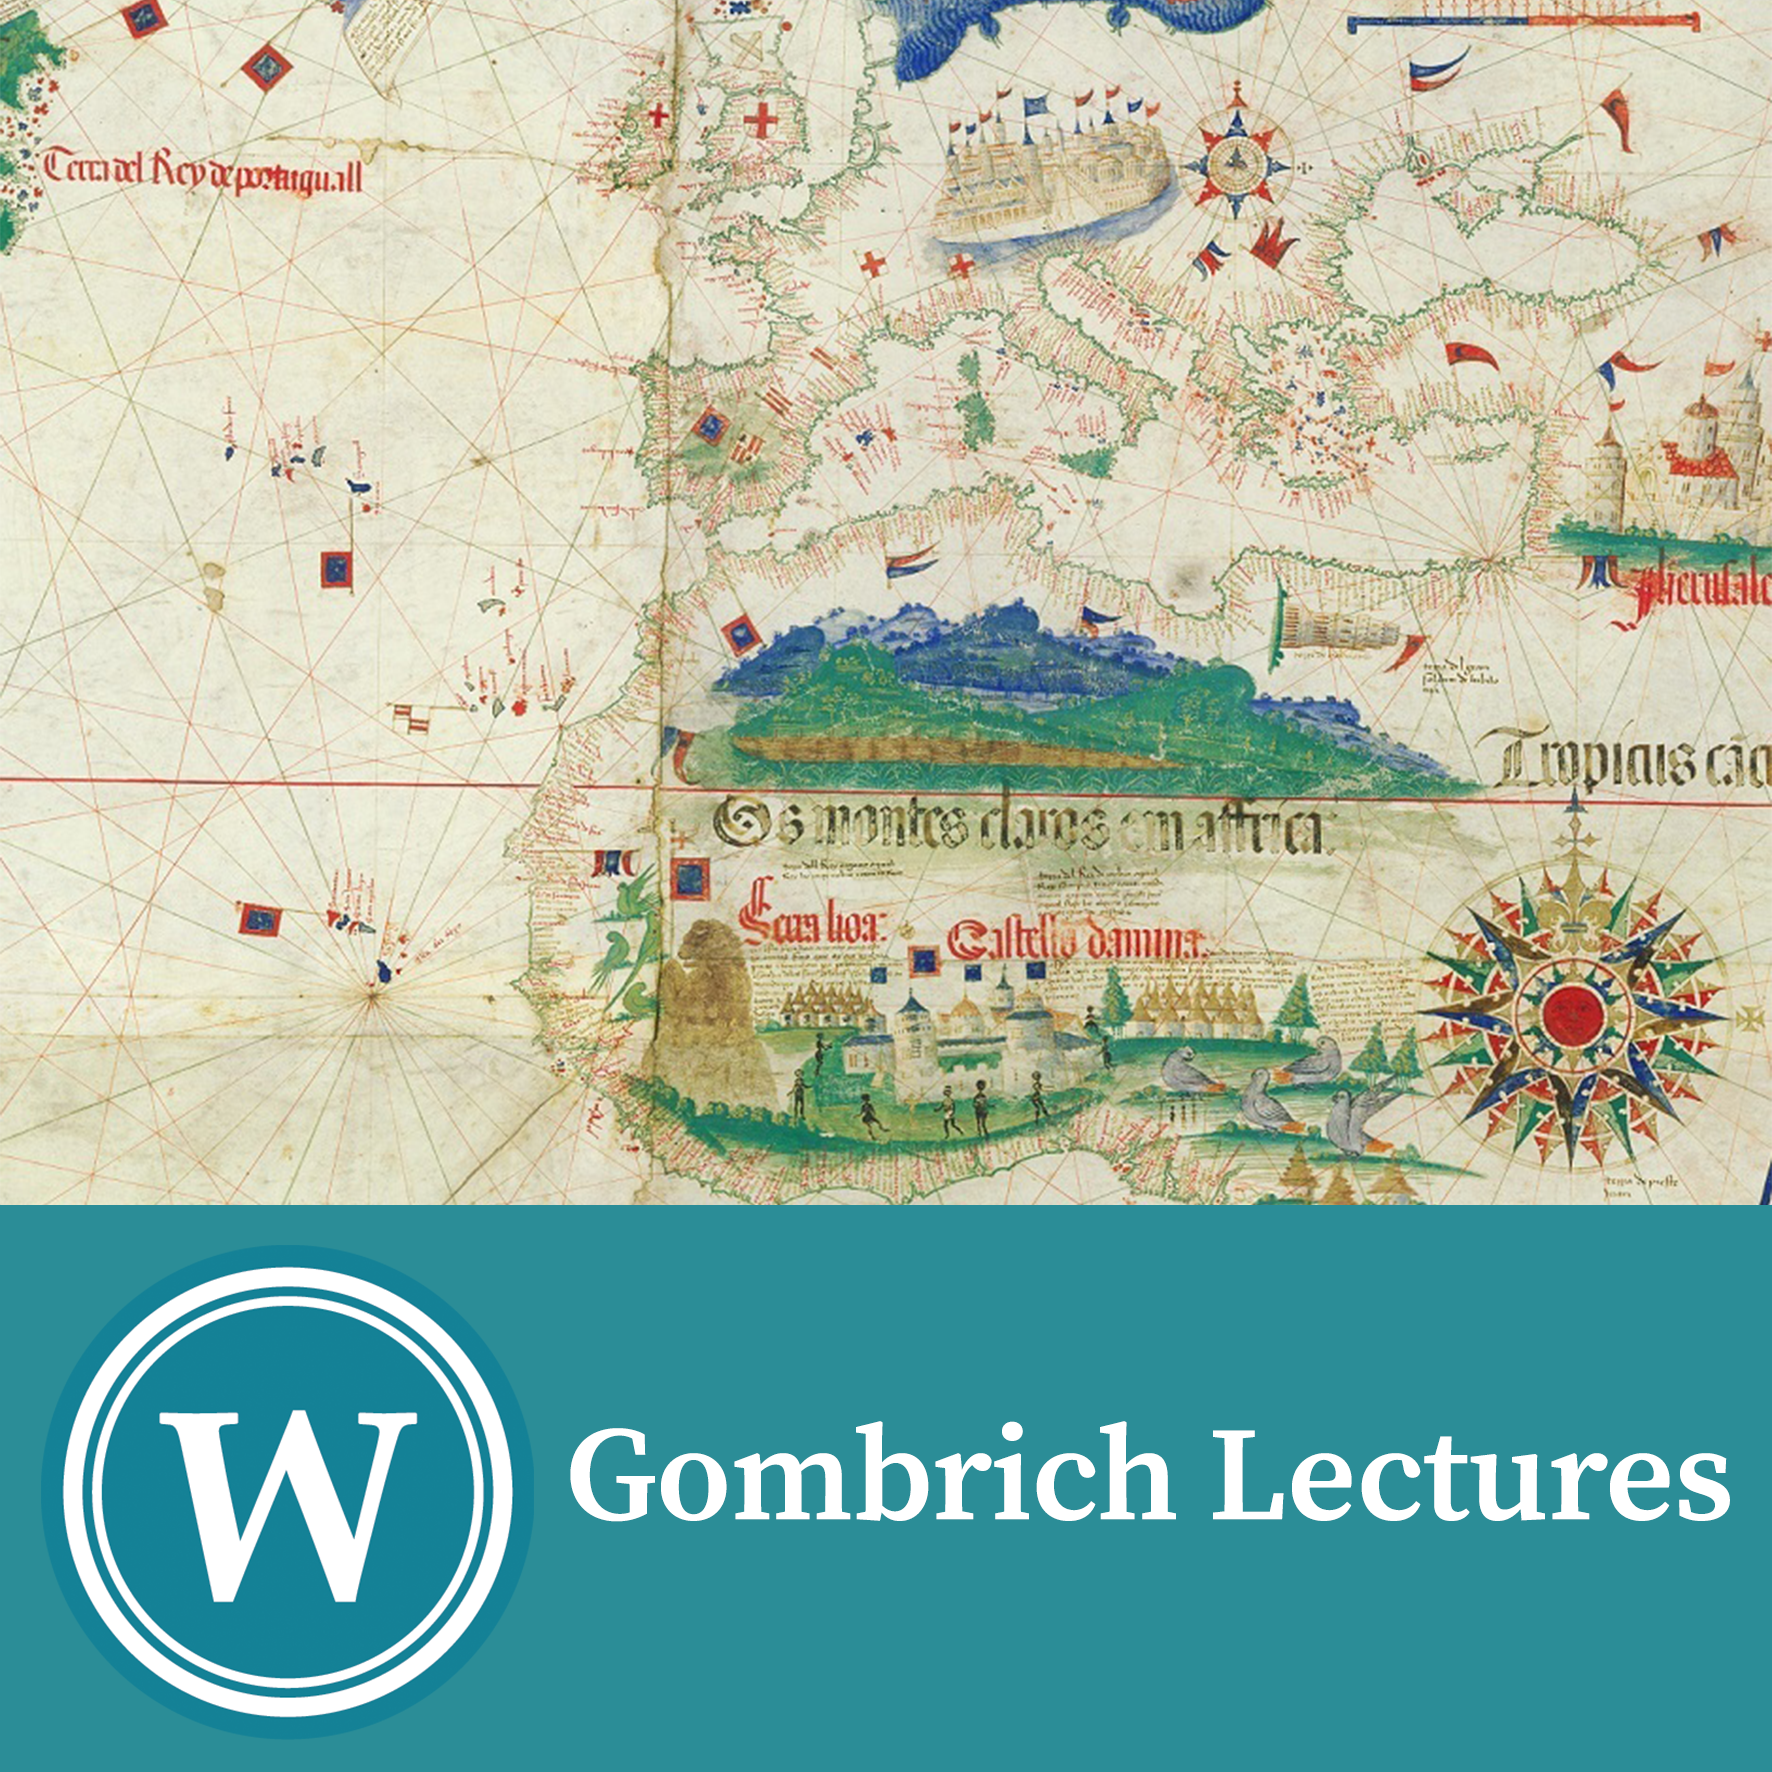 Gombrich Lectures: Provenance and possession: Global acquisitions from the Portuguese trading empire in Renaissance Italy